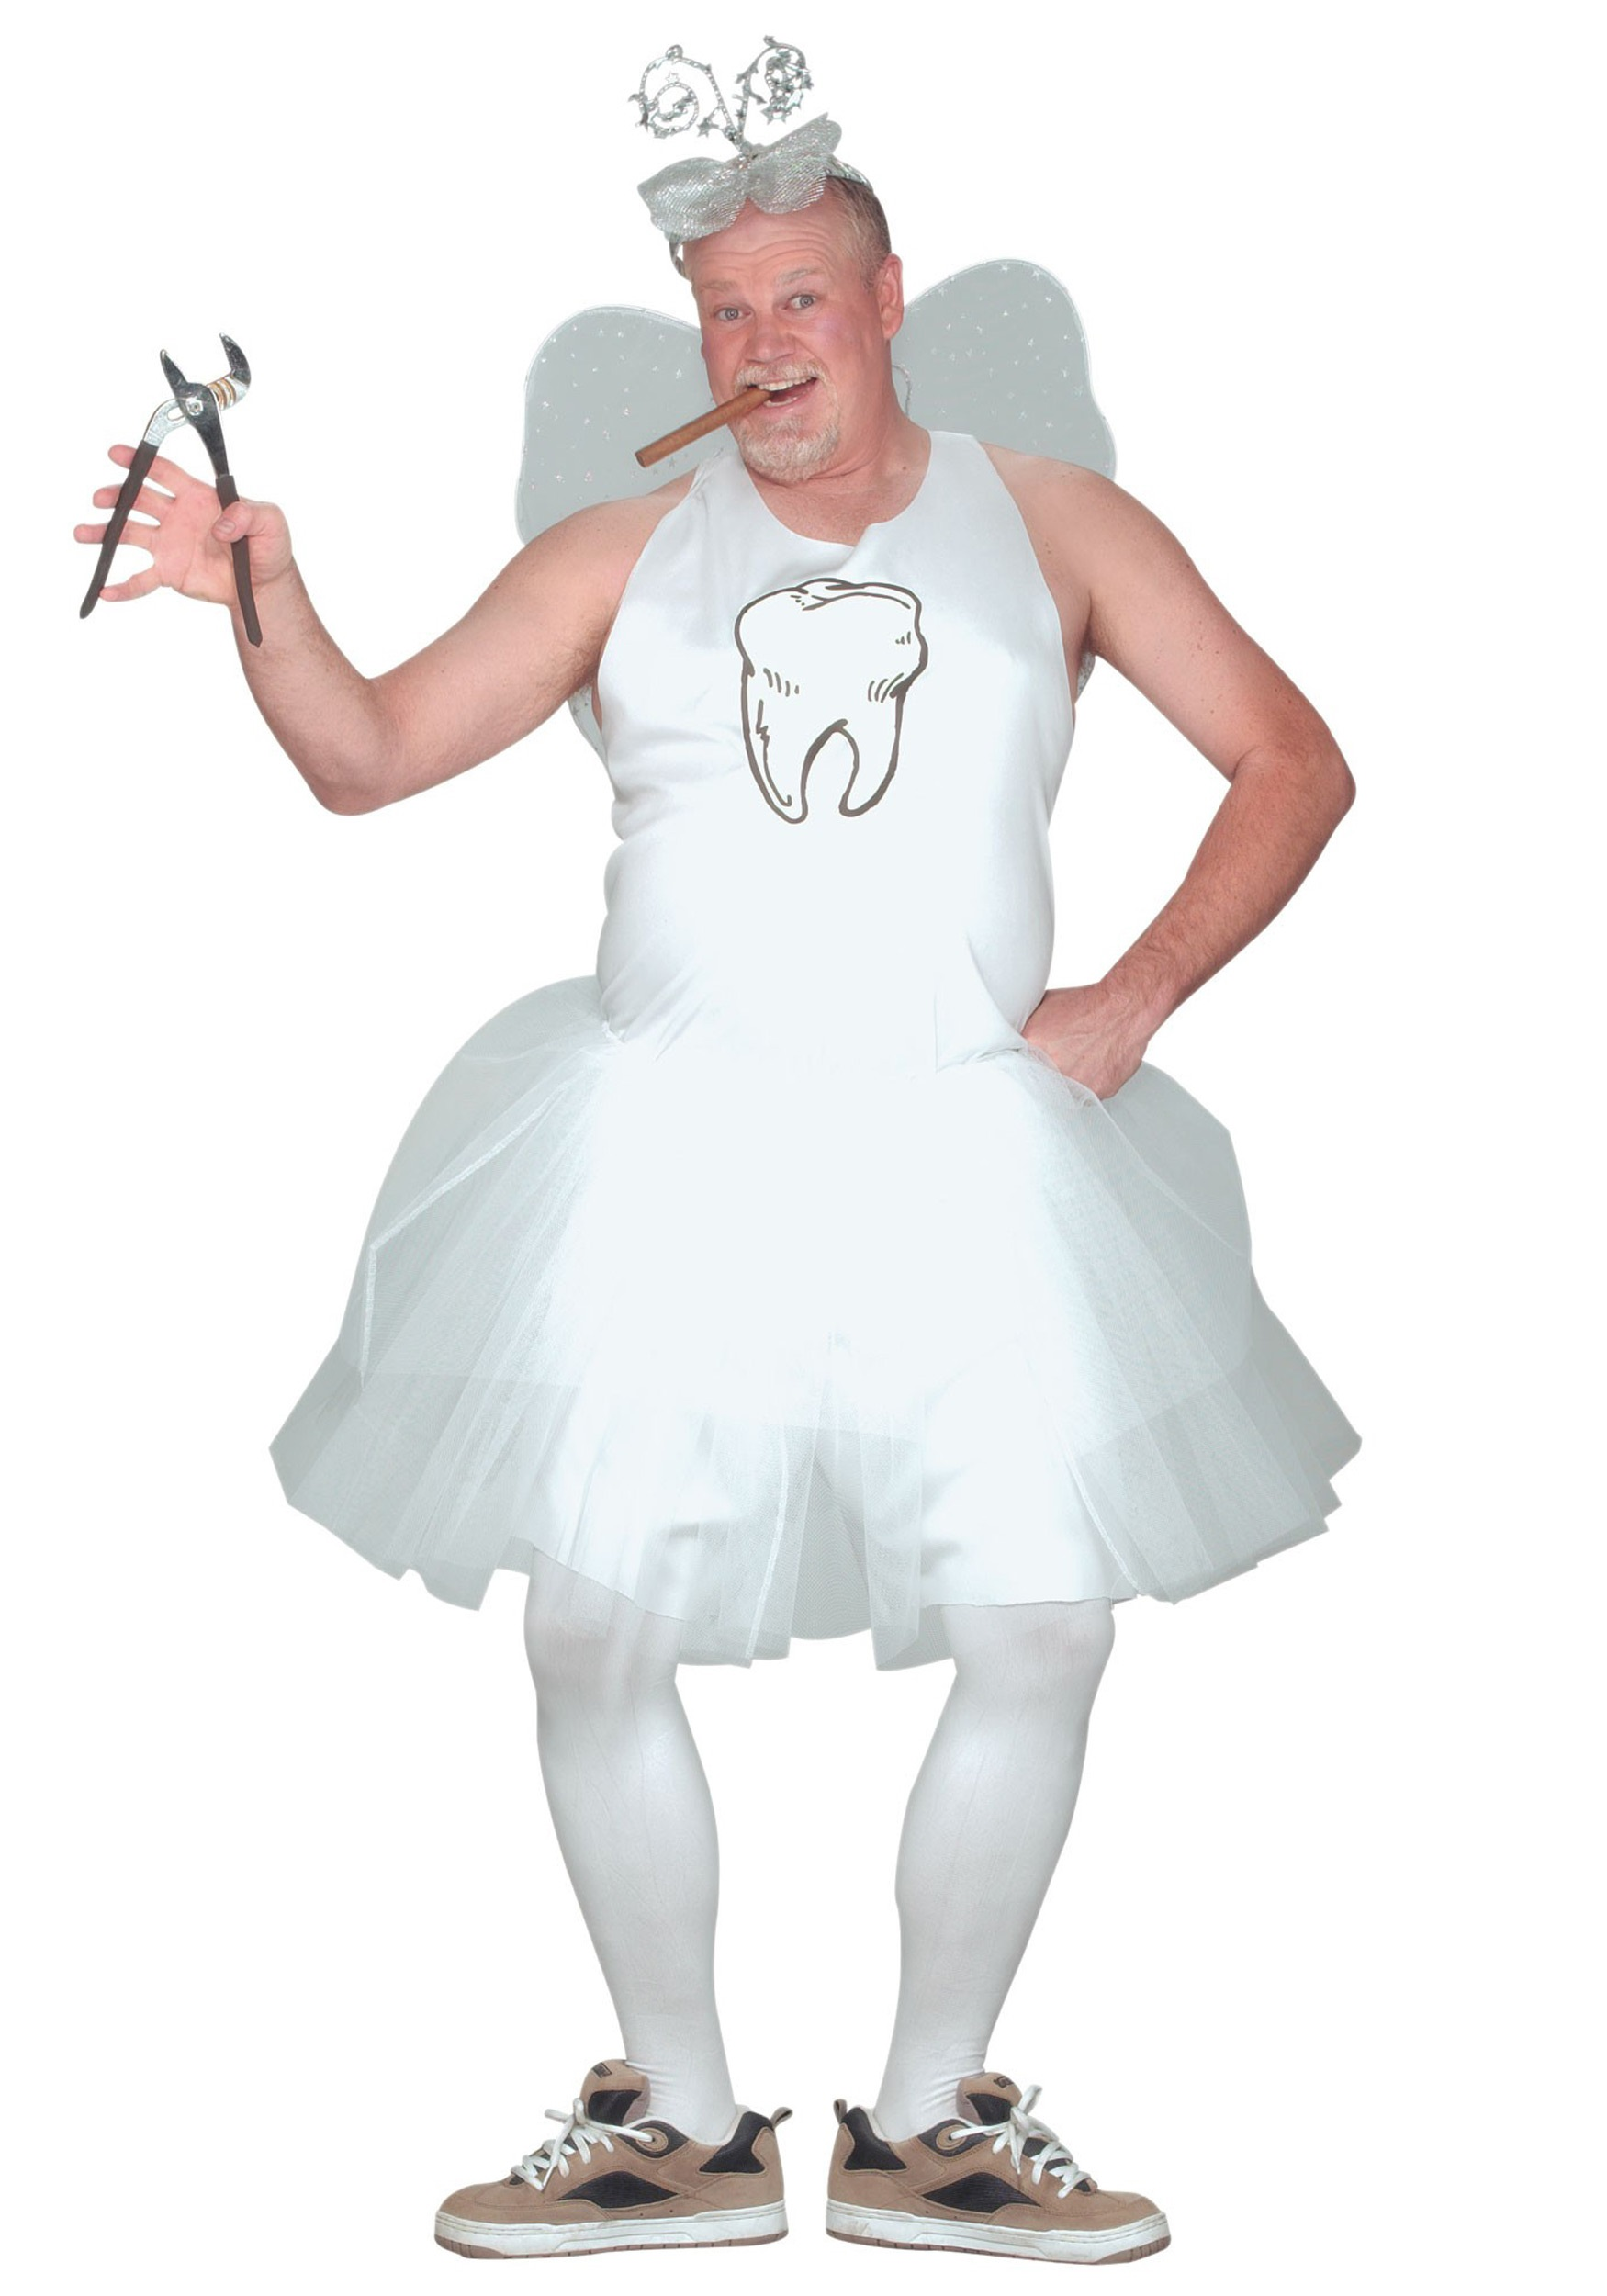 ... tooth fairy costume kids download ...  sc 1 st  Best Kids Costumes & Kid Fairy Costume - Best Kids Costumes